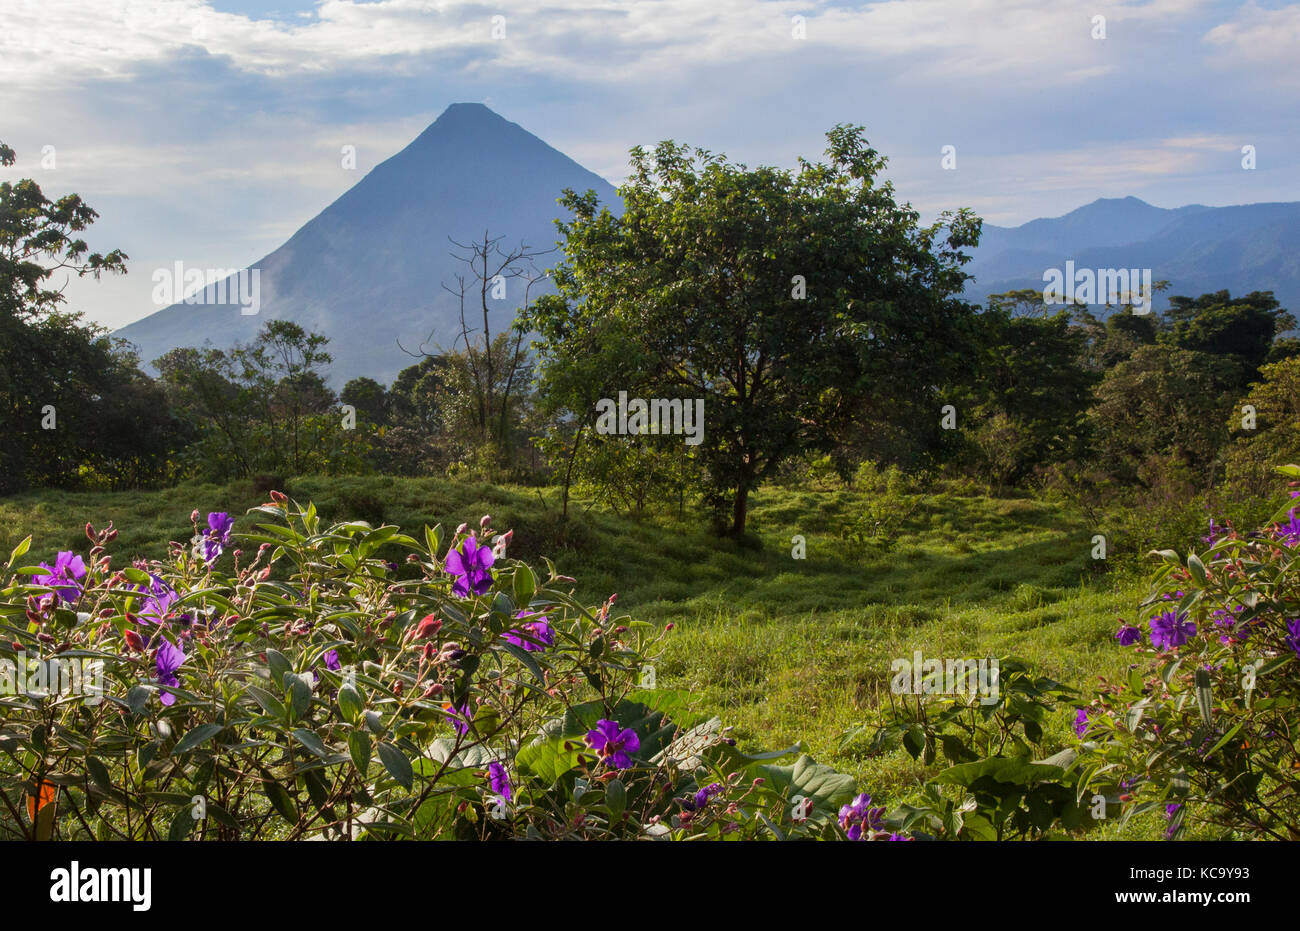 Arenal Volcano In Costa Rica With Tropical Flowers